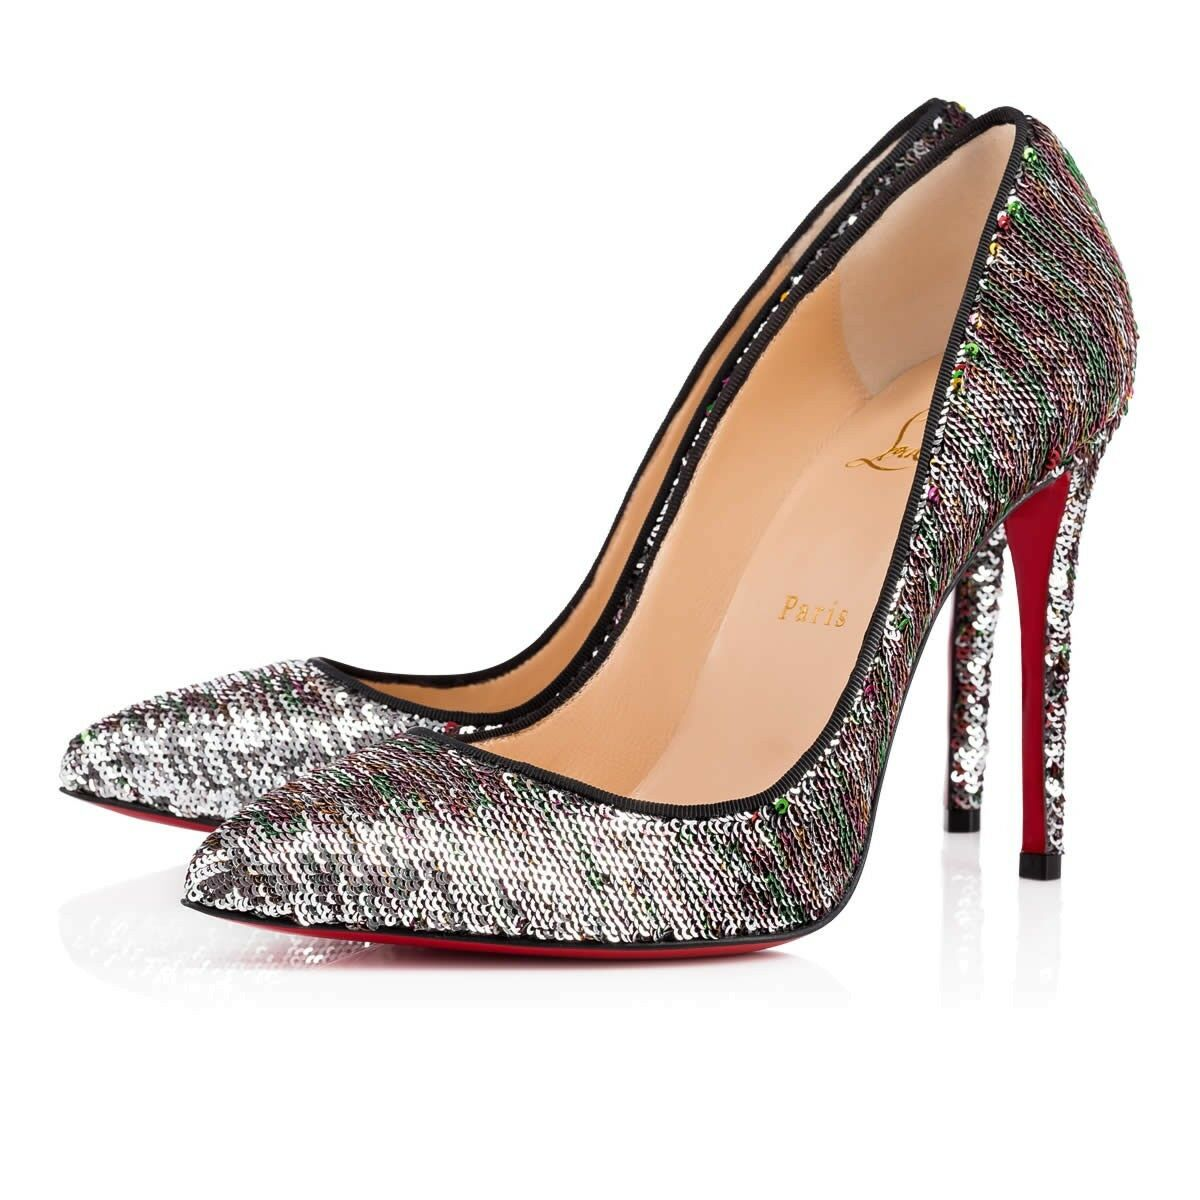 NIB Christian Louboutin Pigalle Follies Pump 100 Silver Sequin ROT Pump Follies Heel 38.5 665018